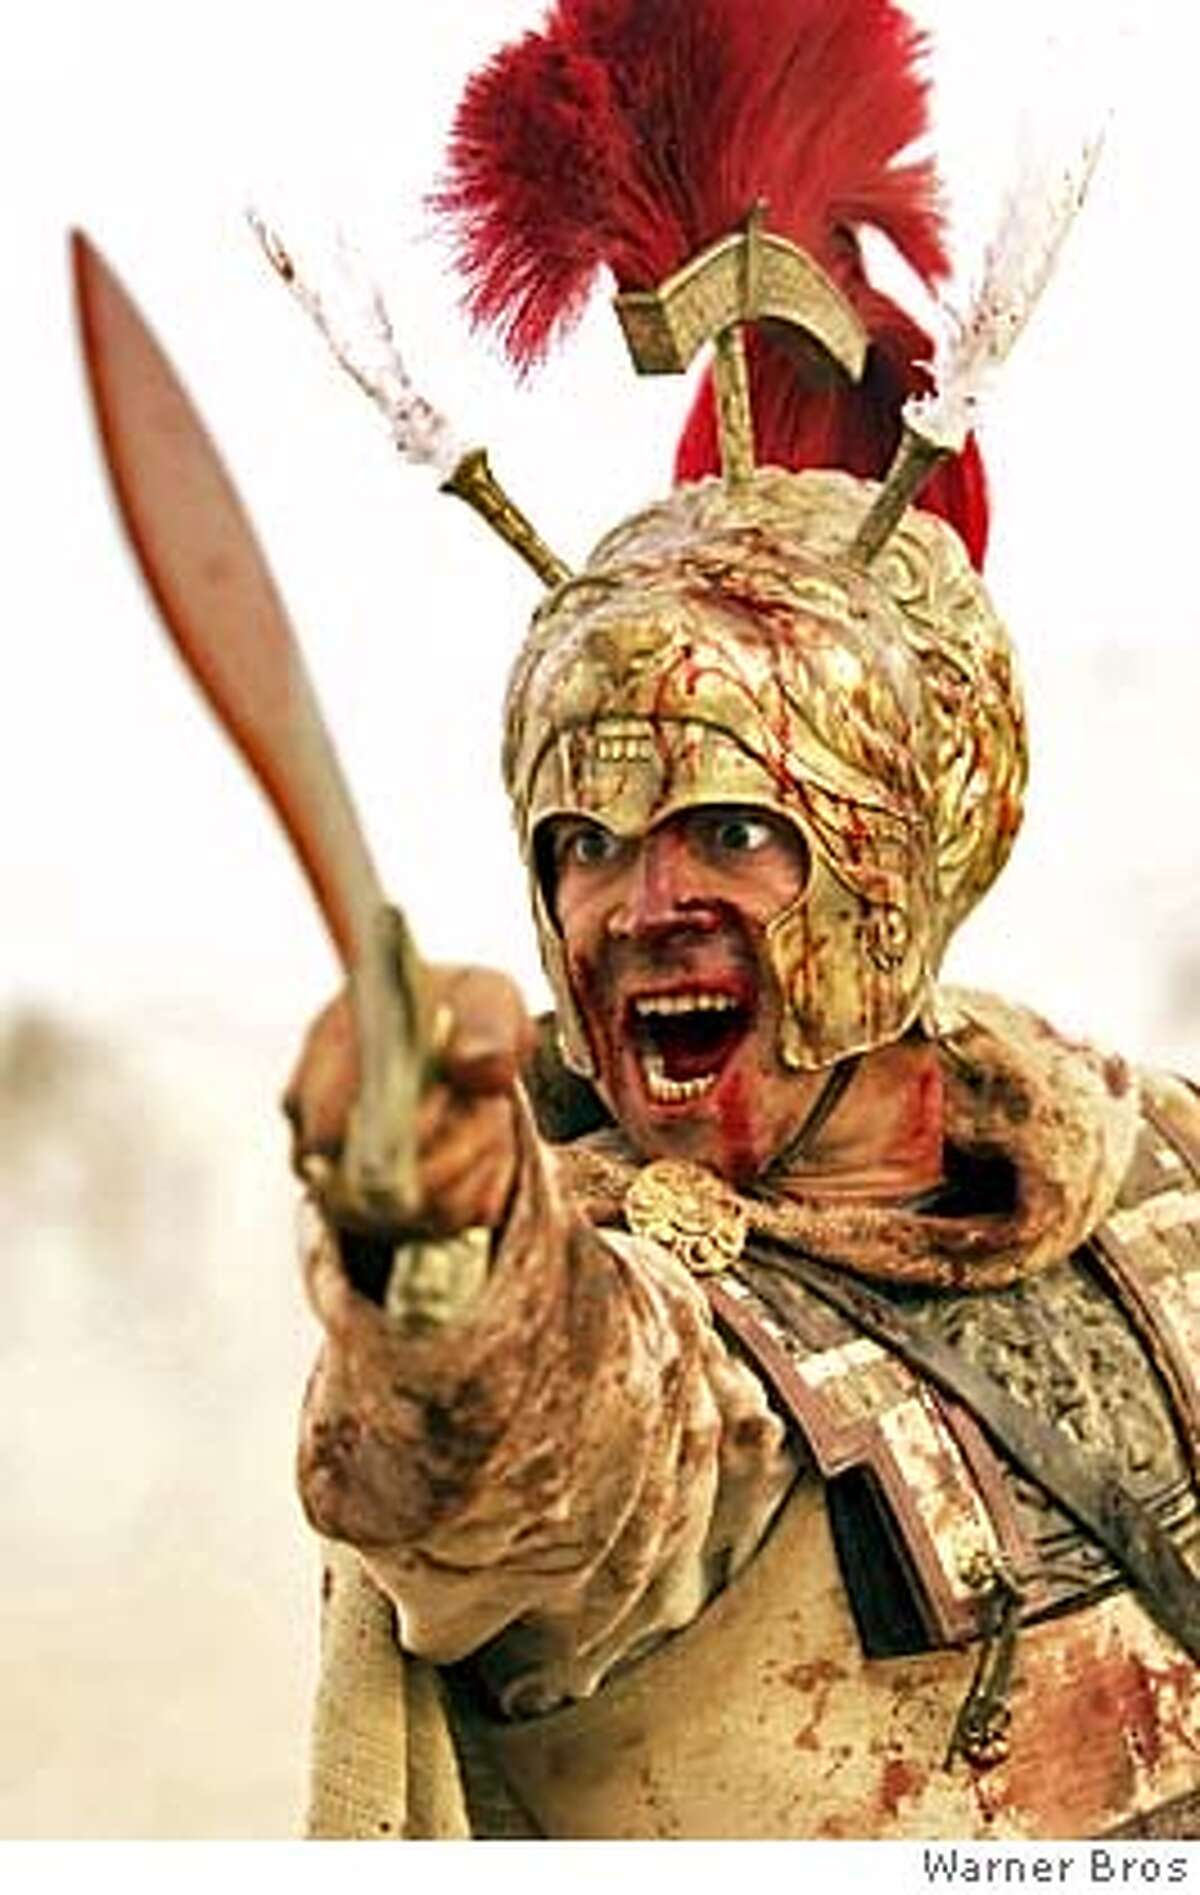 Actor Colin Farrell portrays Alexander the Great in a scene from the new action adventure drama film